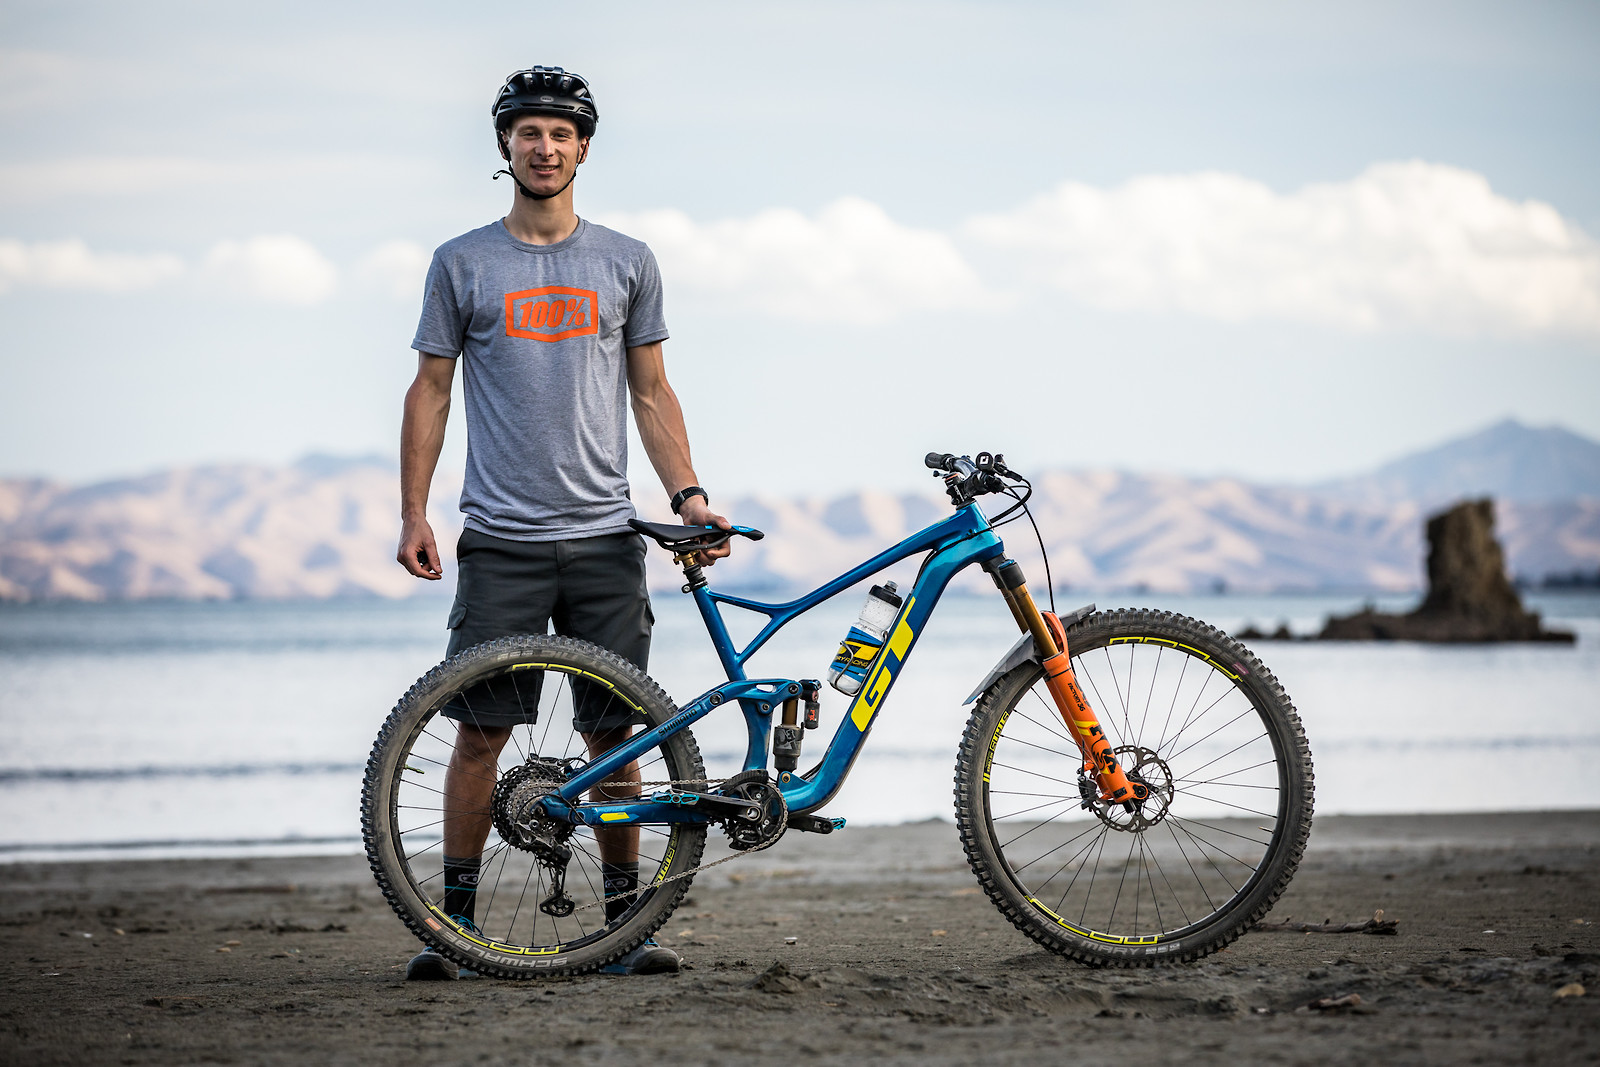 Martin with his GT Force at the NZ Enduro two weeks ago. Stay tuned for an interview with Martin about his set-up dropping tomorrow.